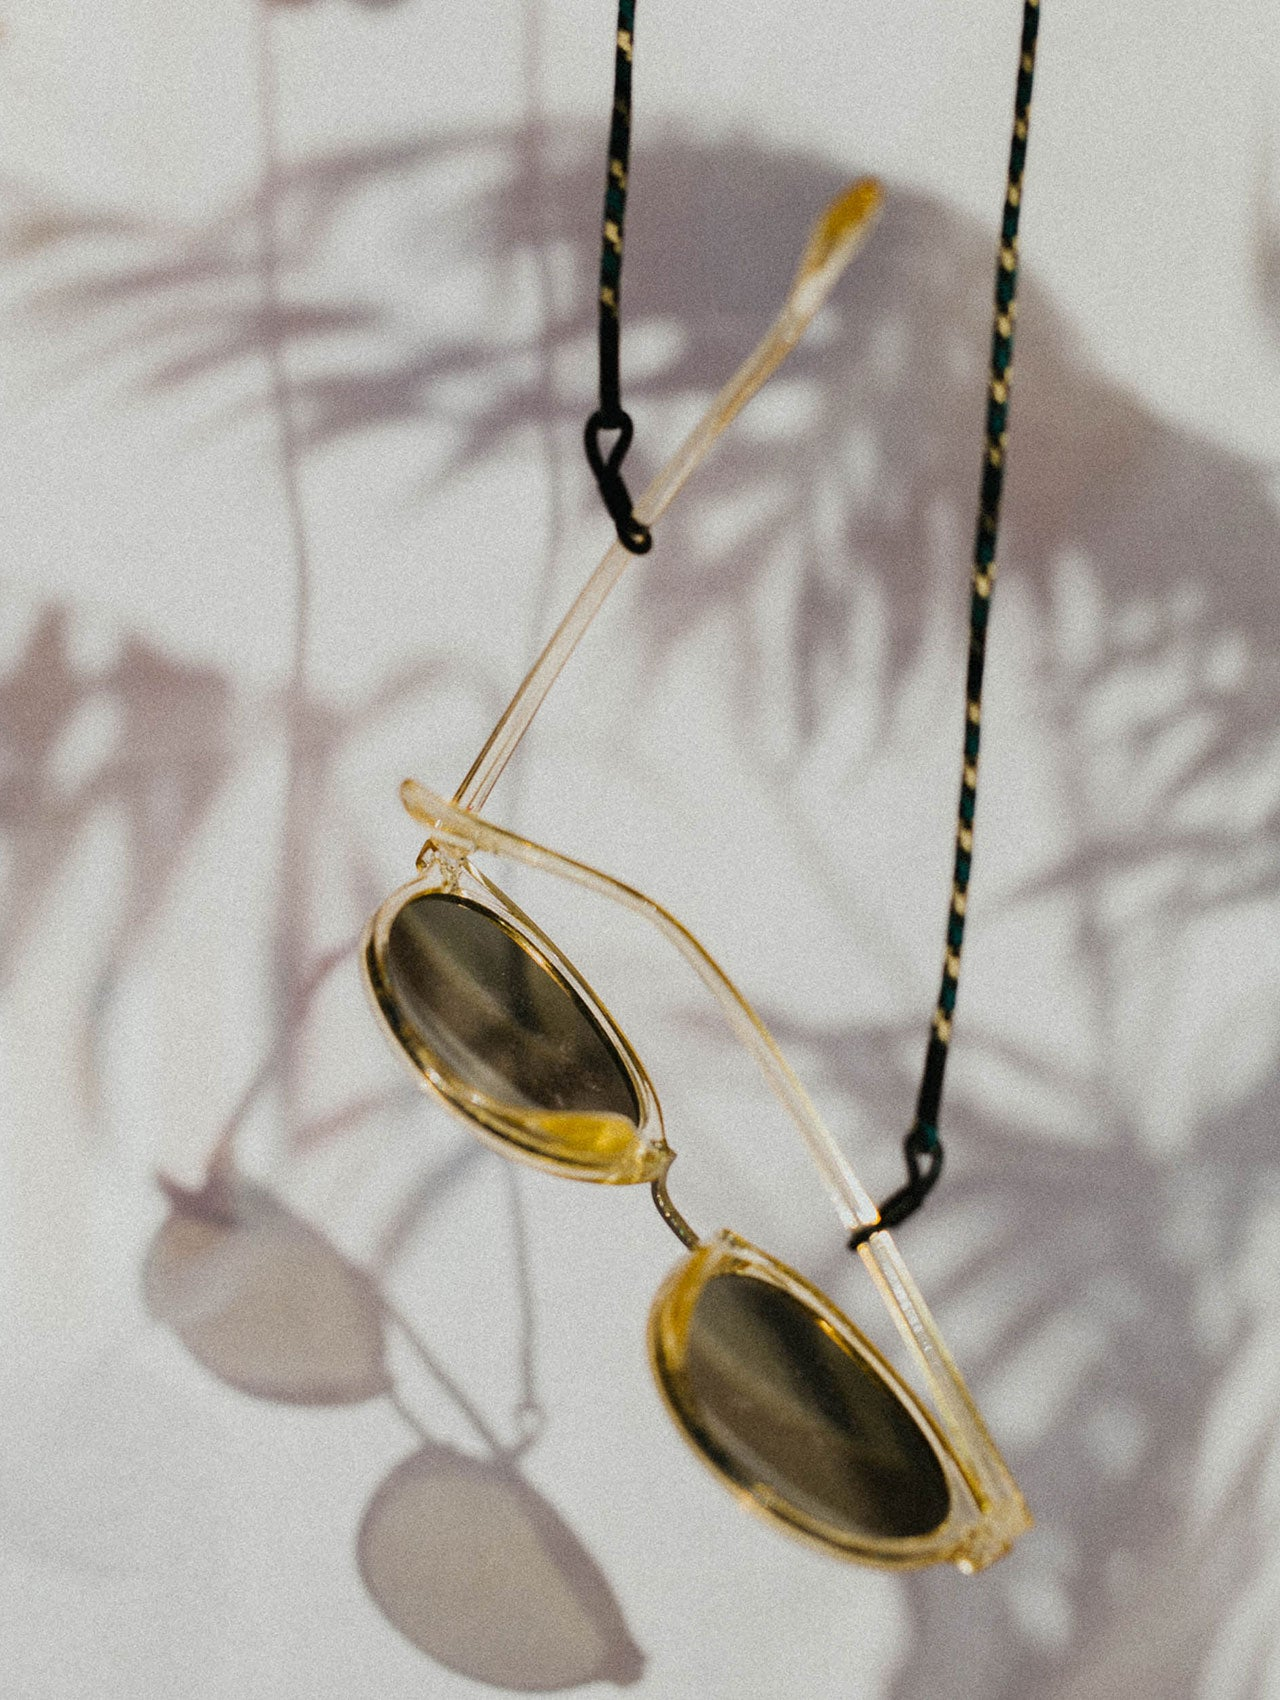 KNOK Glasses Chain Camo Green cord with sunglasses hanging in sunshine and palm shadows